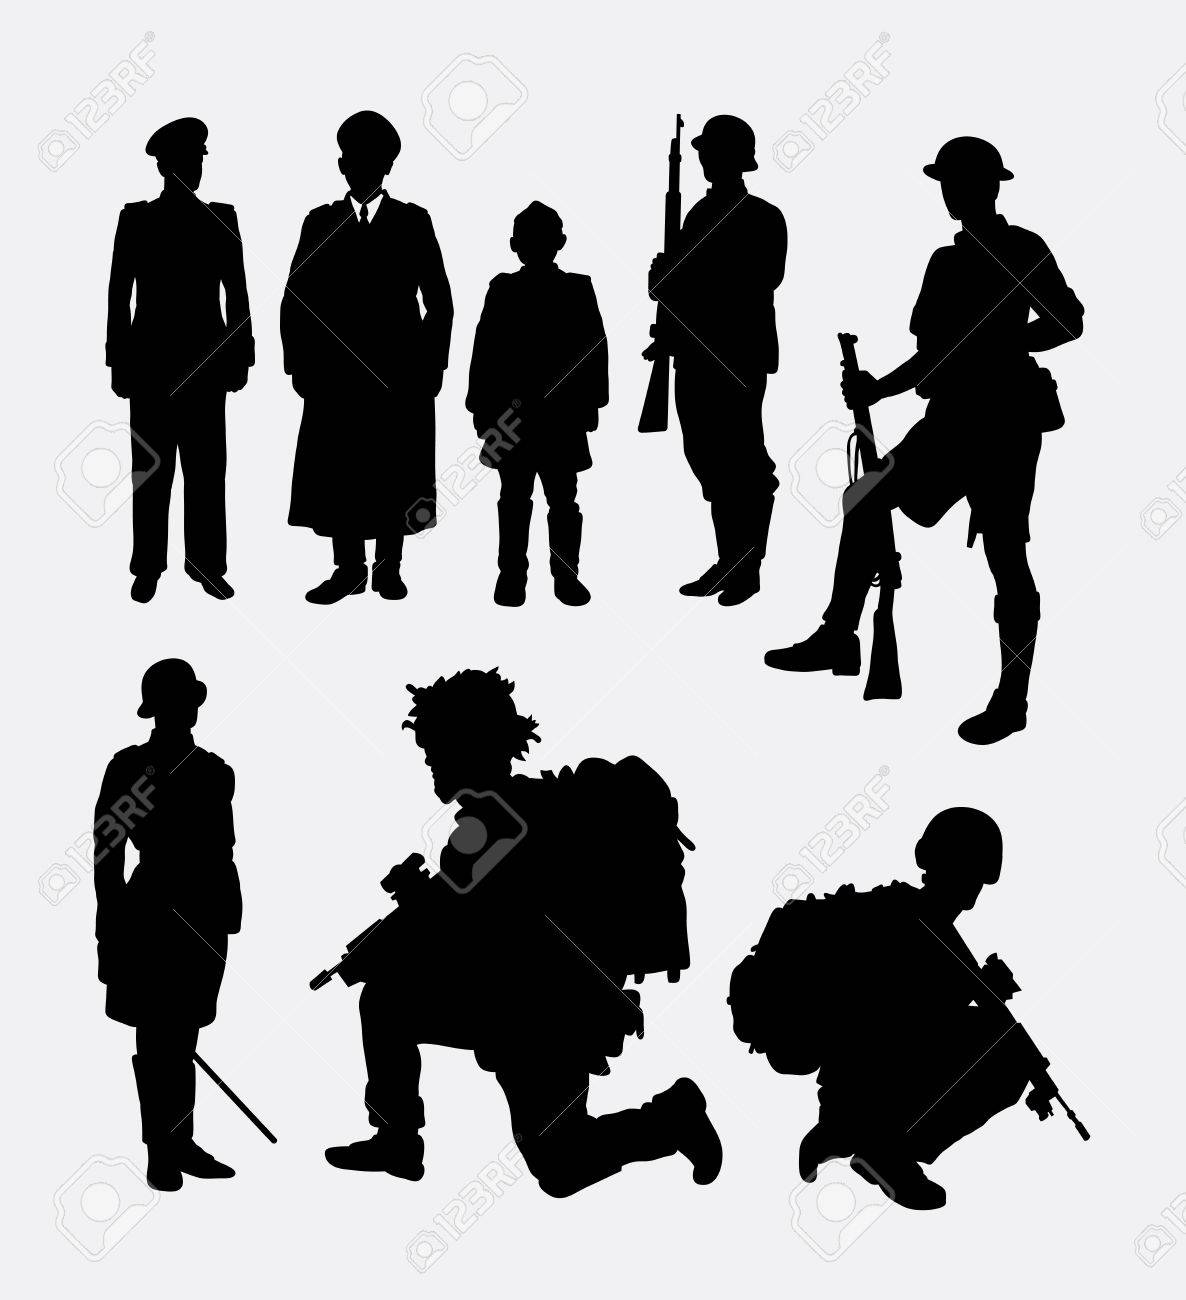 Soldier army police silhouette 4 good use for symbol web icon